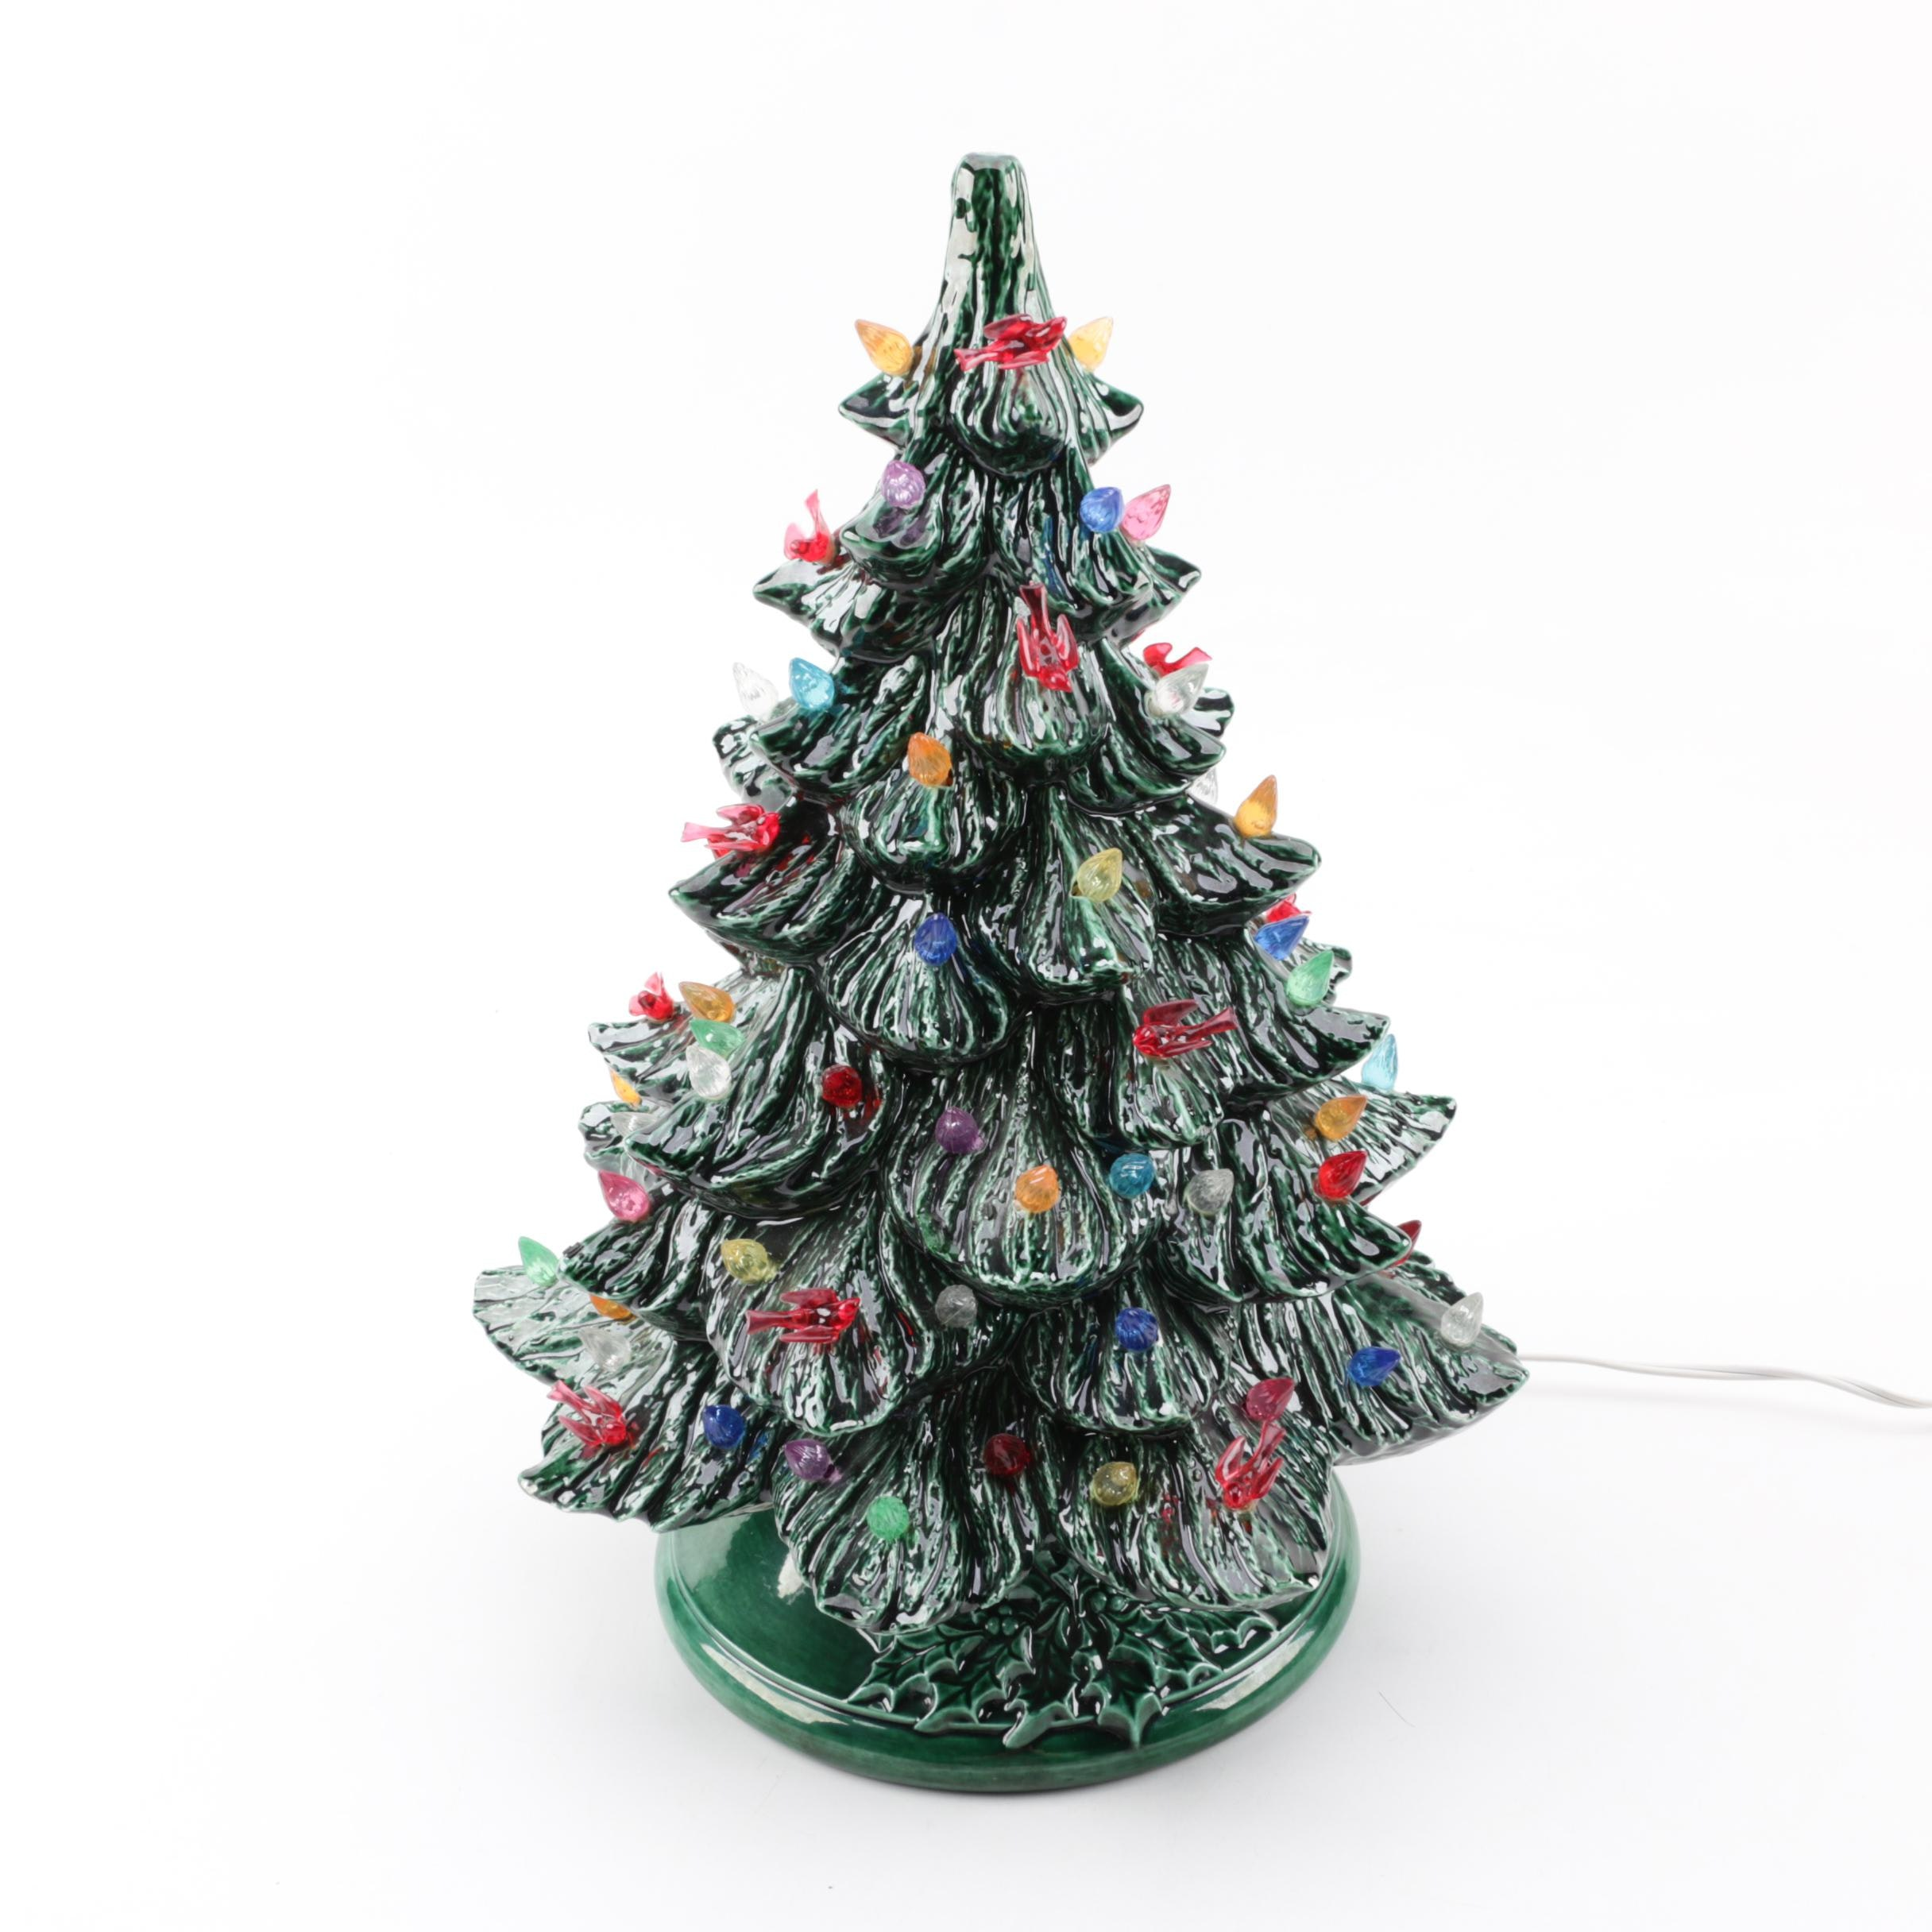 Hand-Painted Ceramic Christmas Tree Lamp, Circa 1970s